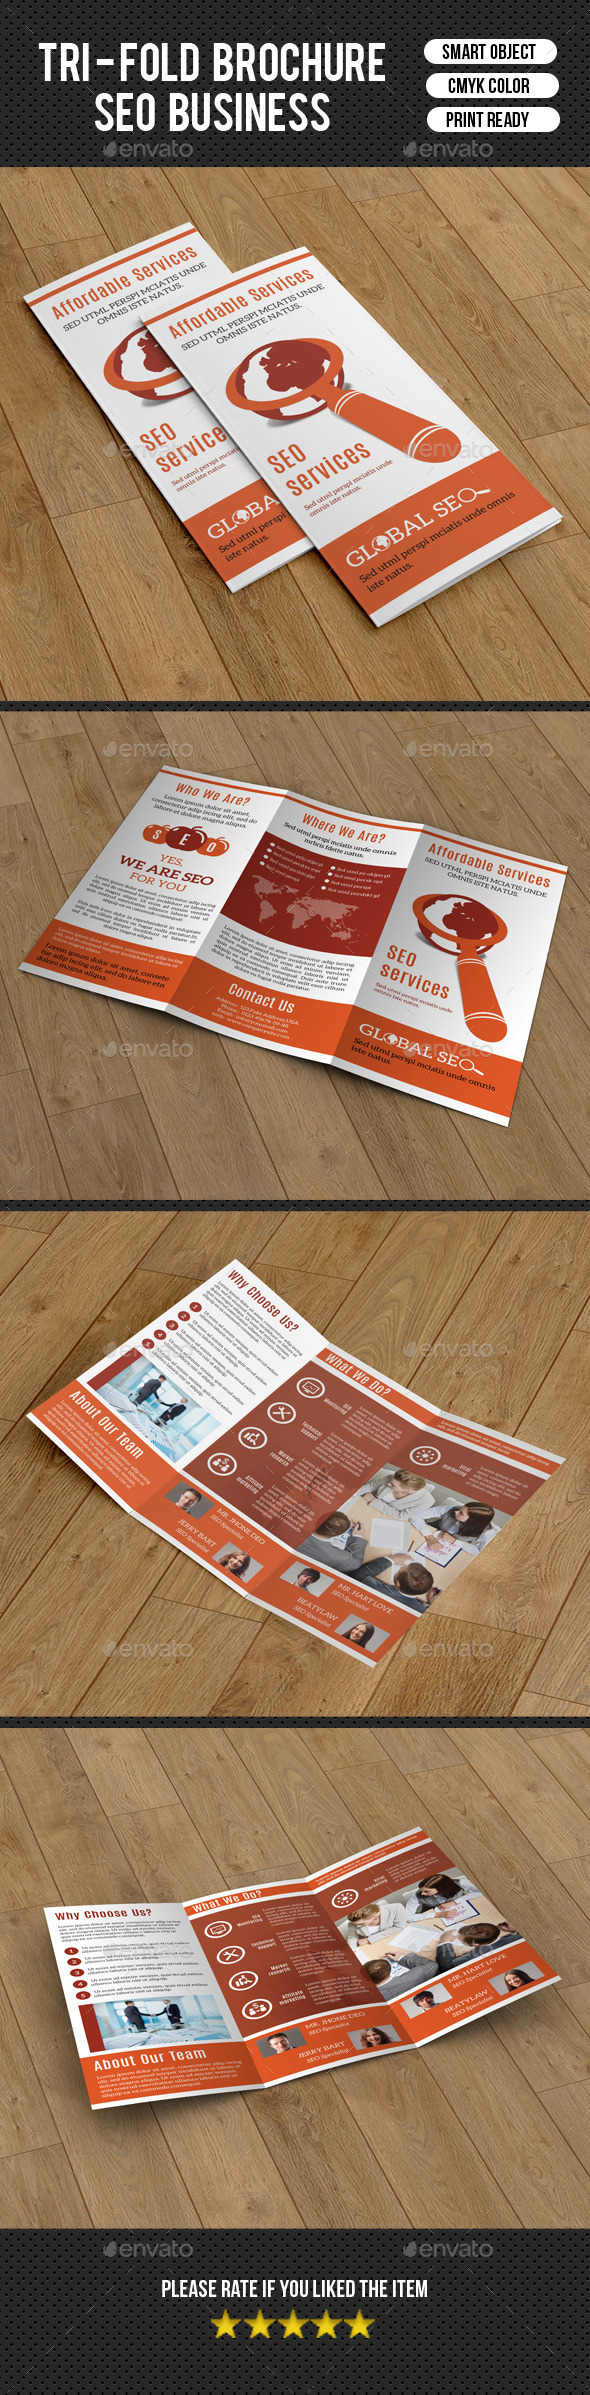 Trifold Brochure for SEO Business-V211 - Corporate Brochures